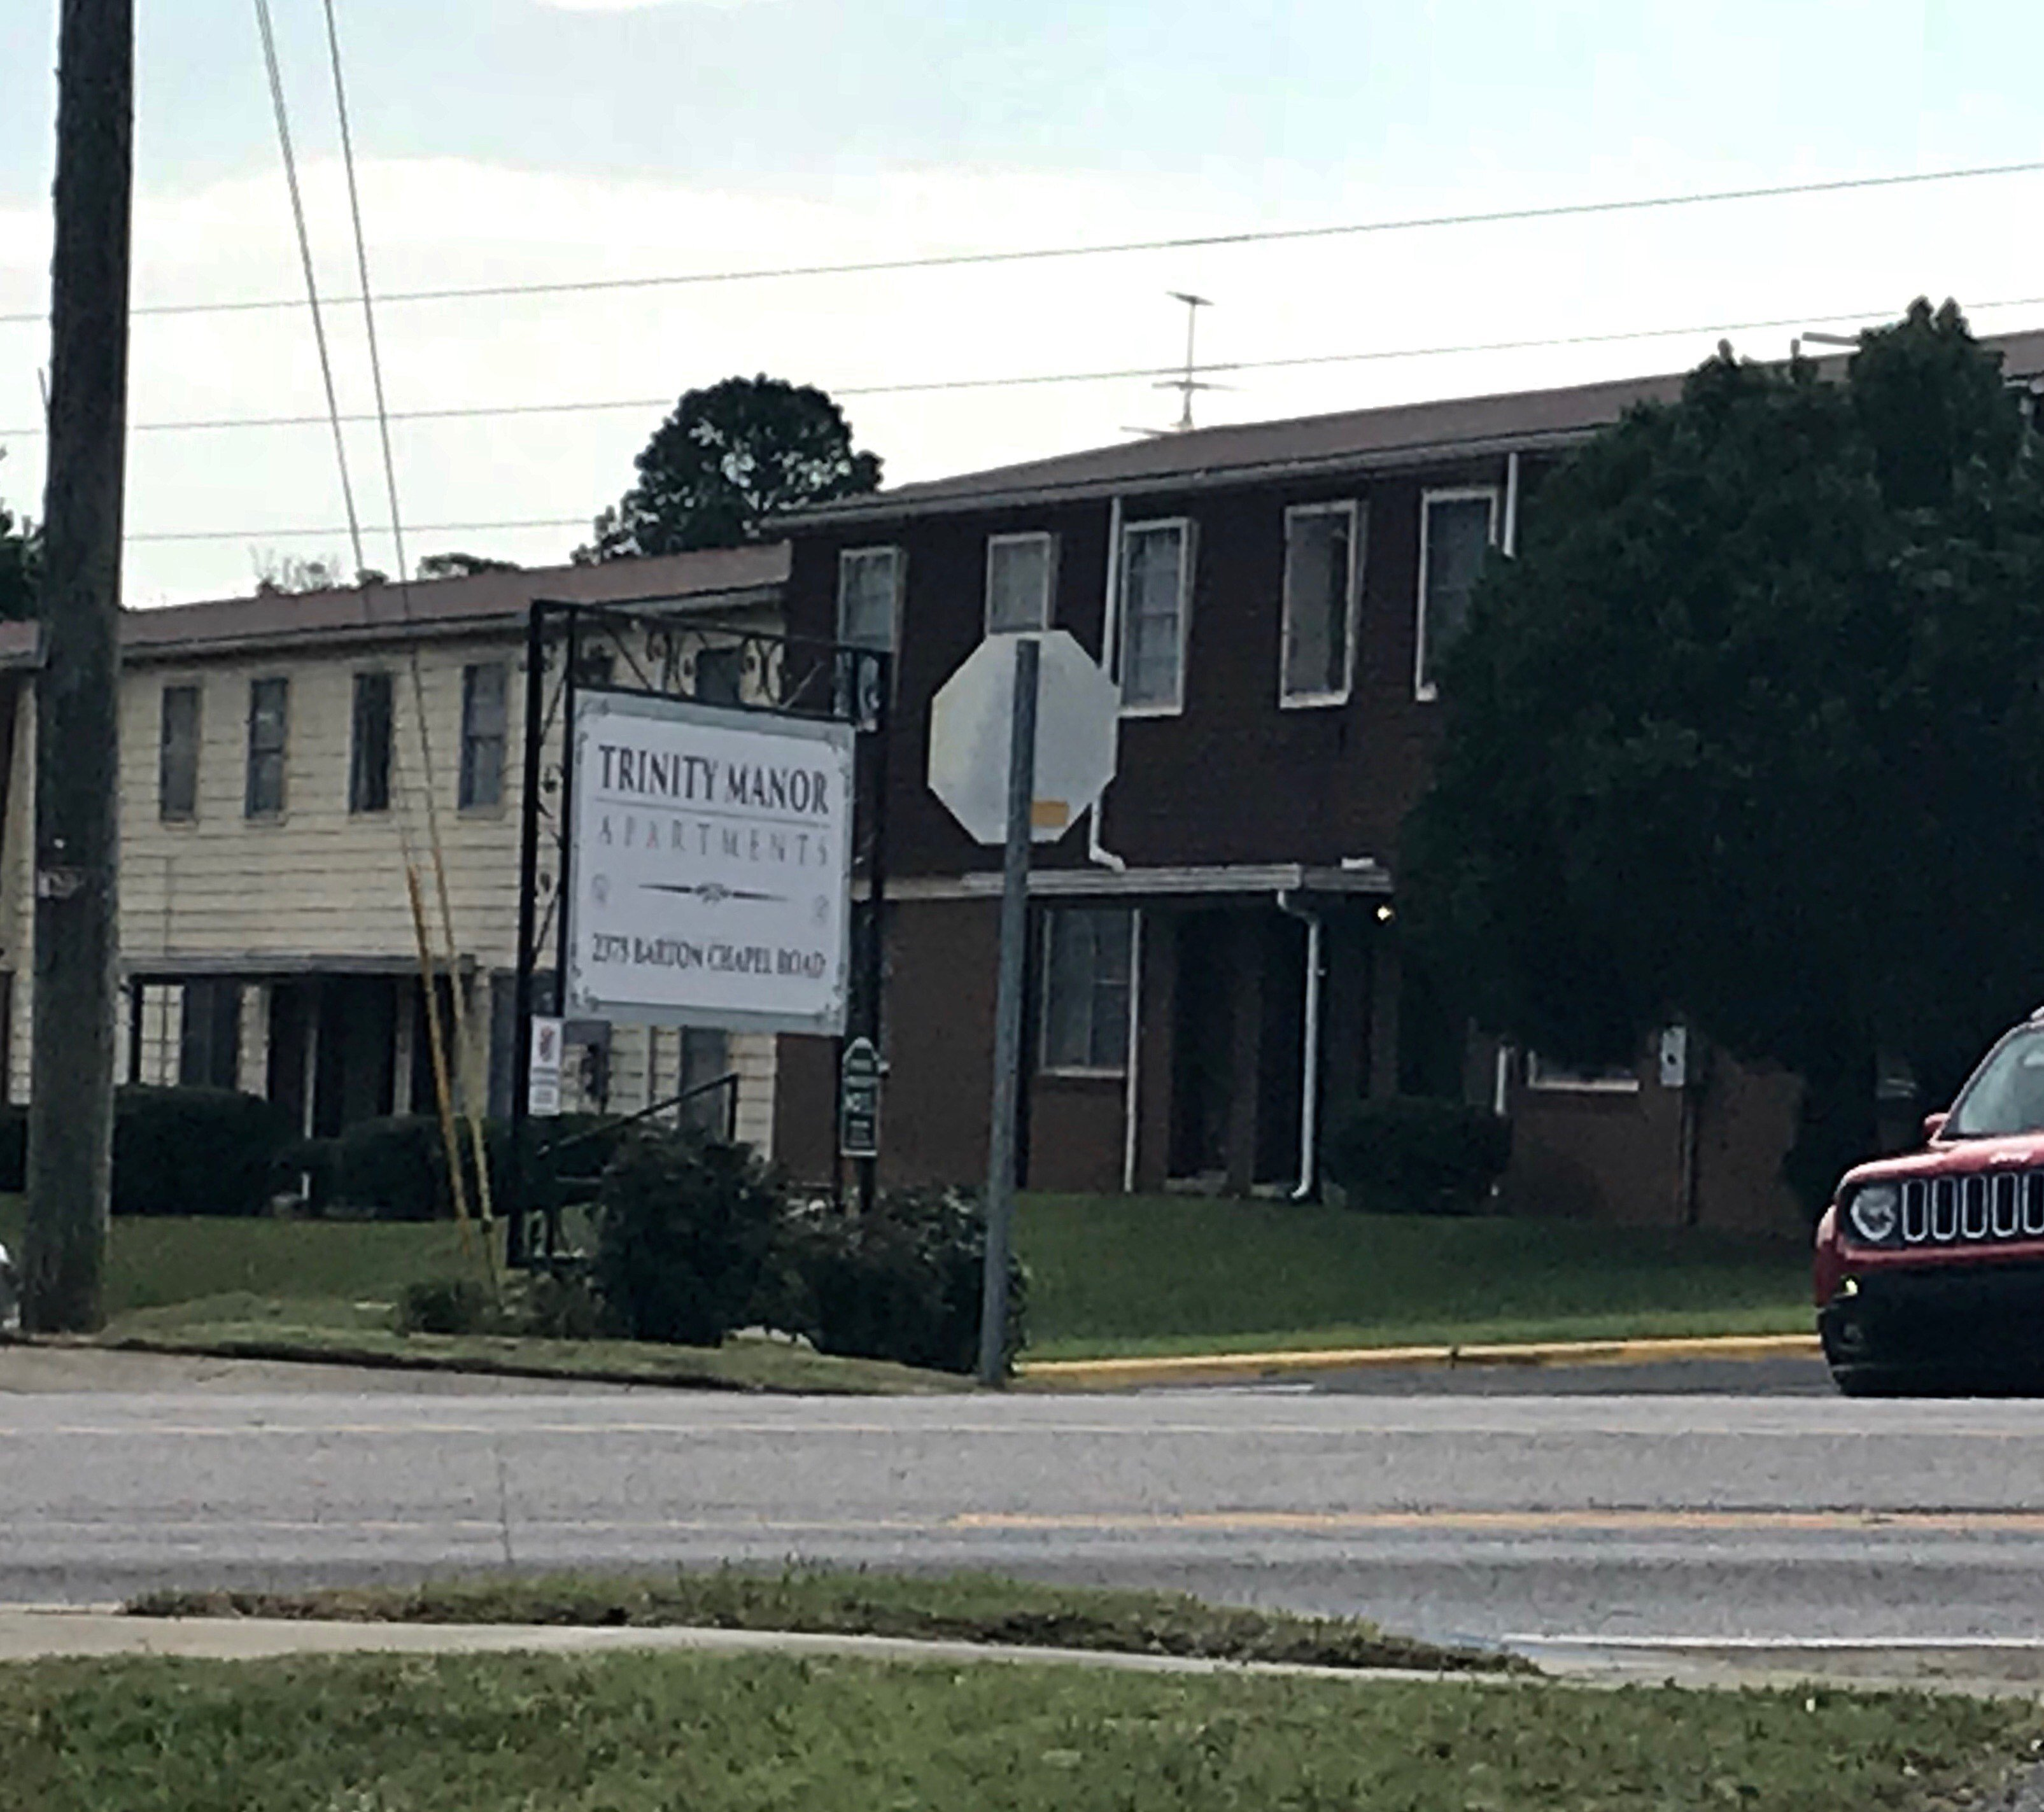 Trinity Manor Apartment Complex, where shots rang out on June 7th just before midnight. (Source: WFXG)